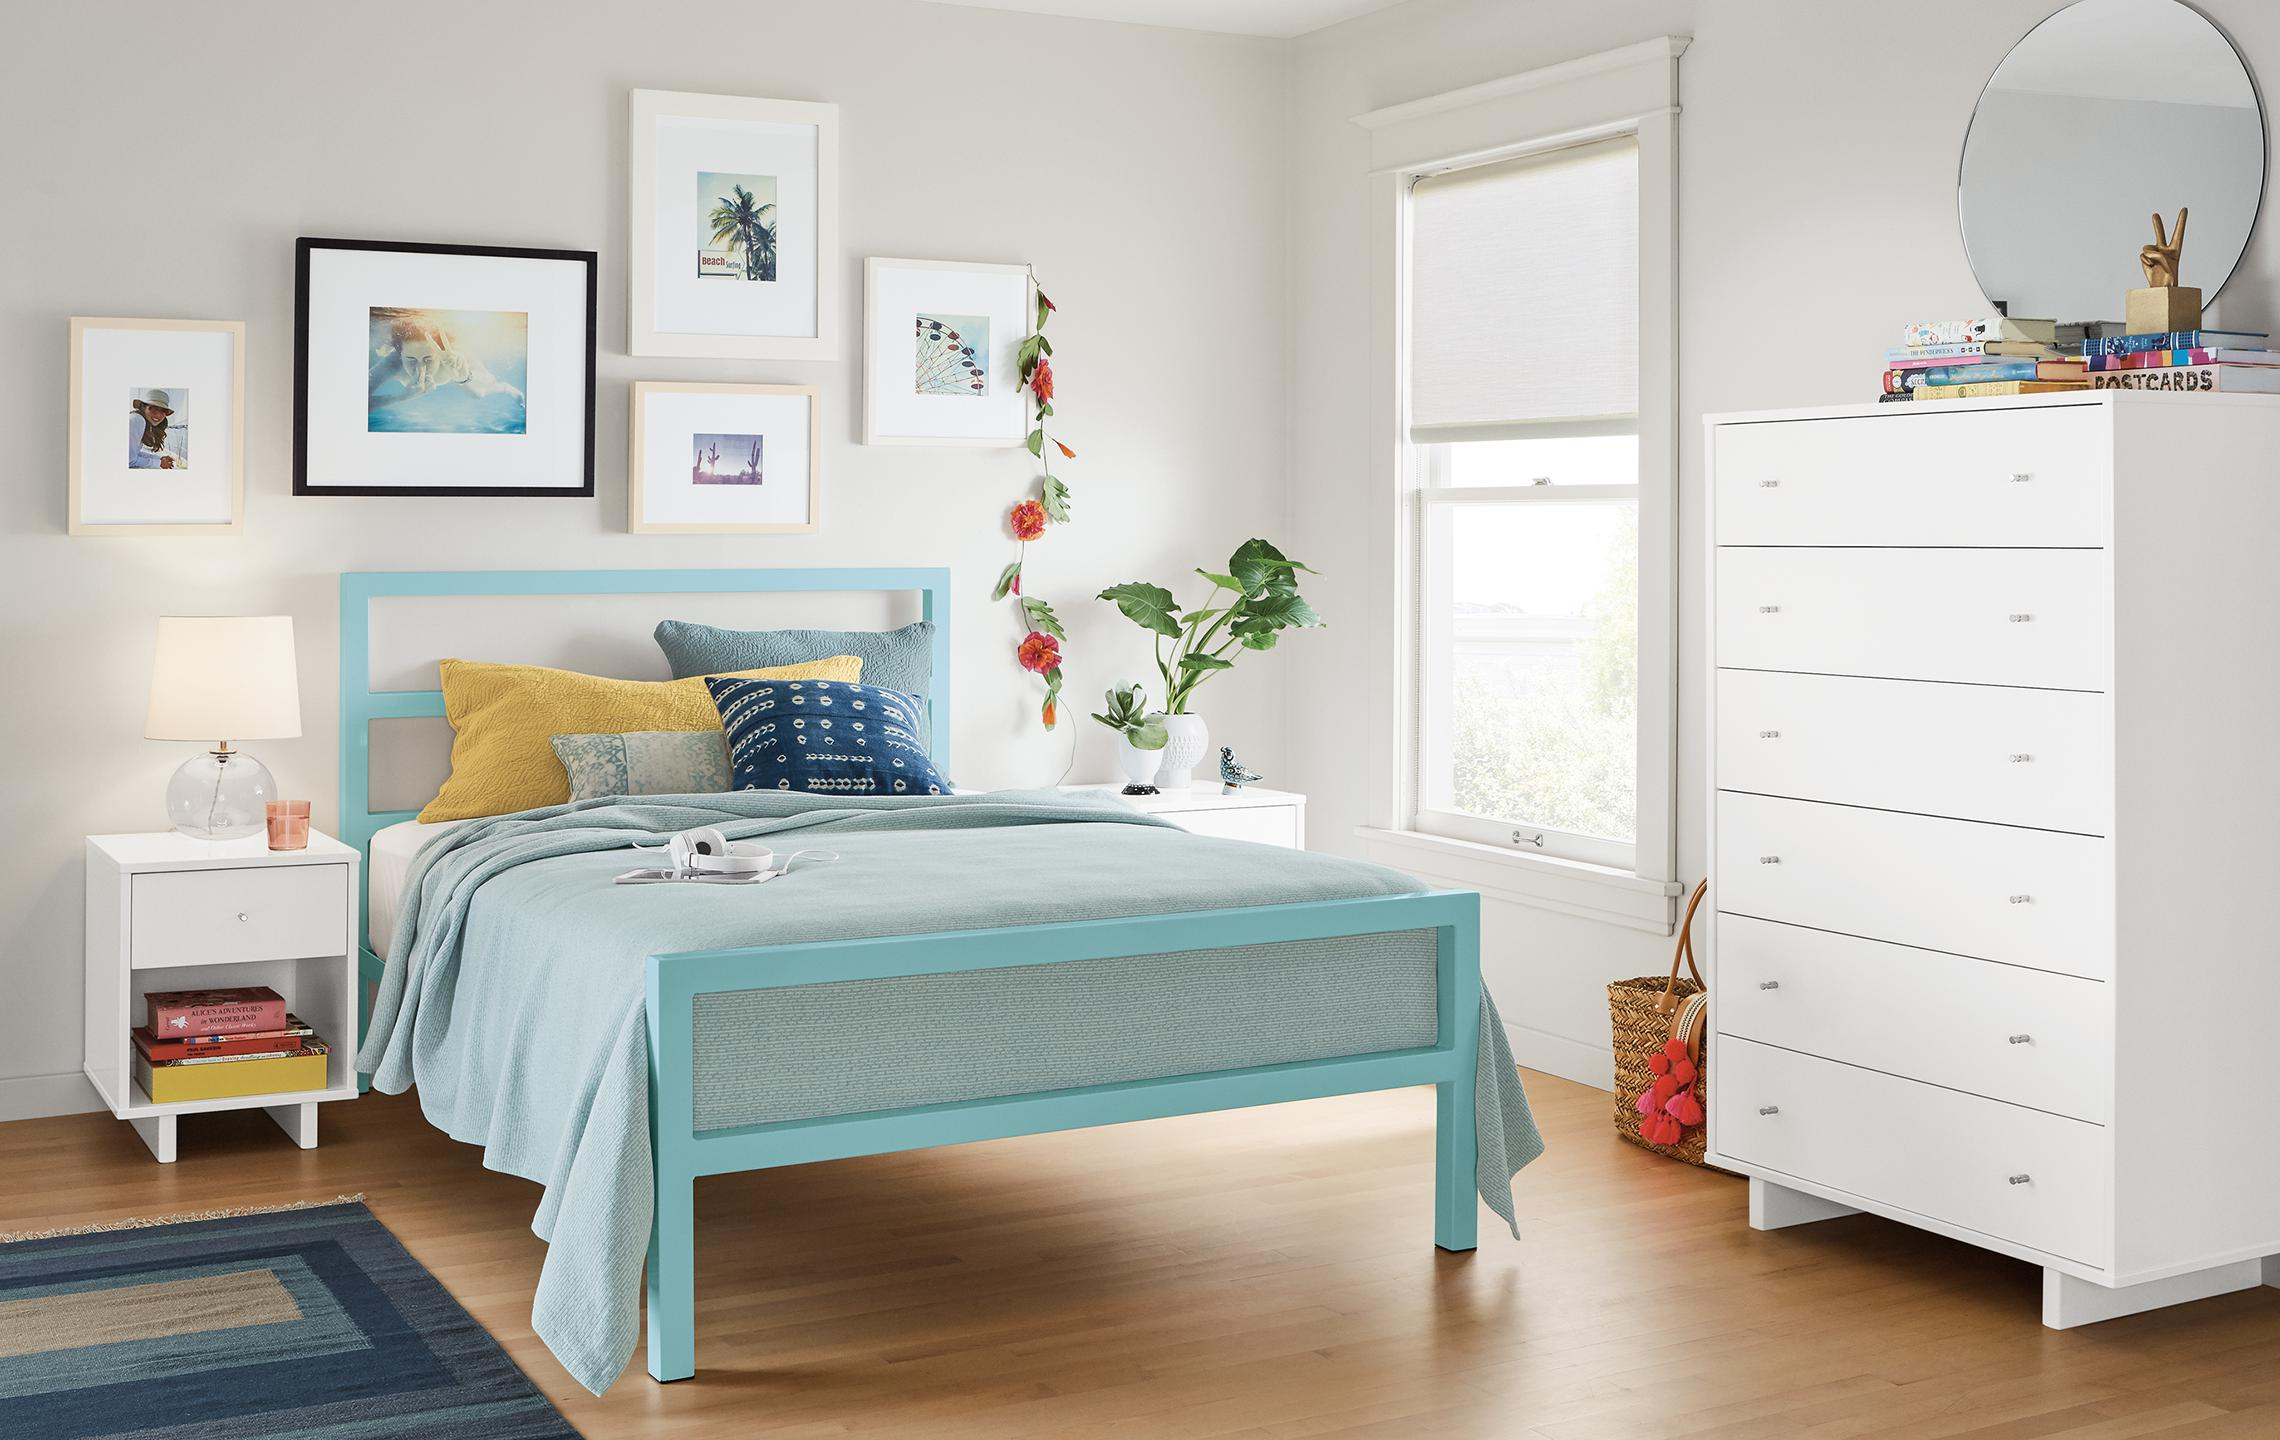 Parsons bed in ocean and white Moda dresser